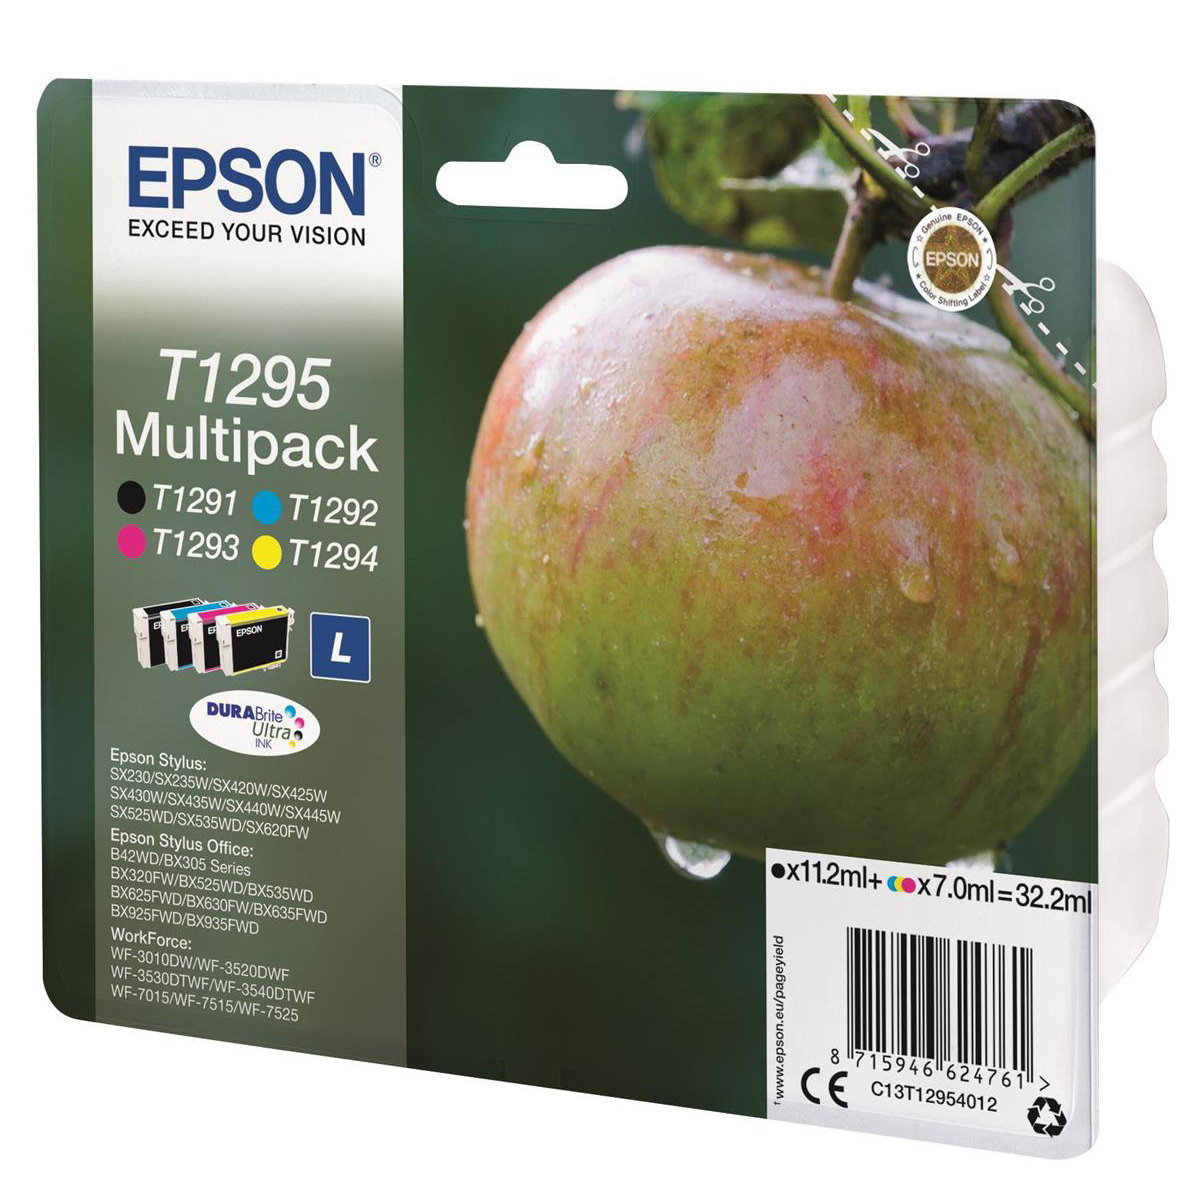 Epson T1295 InkCartApple L PageLife 380ppBlk/445ppCyan/330ppMag/545ppYell 7ml Ref C13T12954012 [Pack 4]